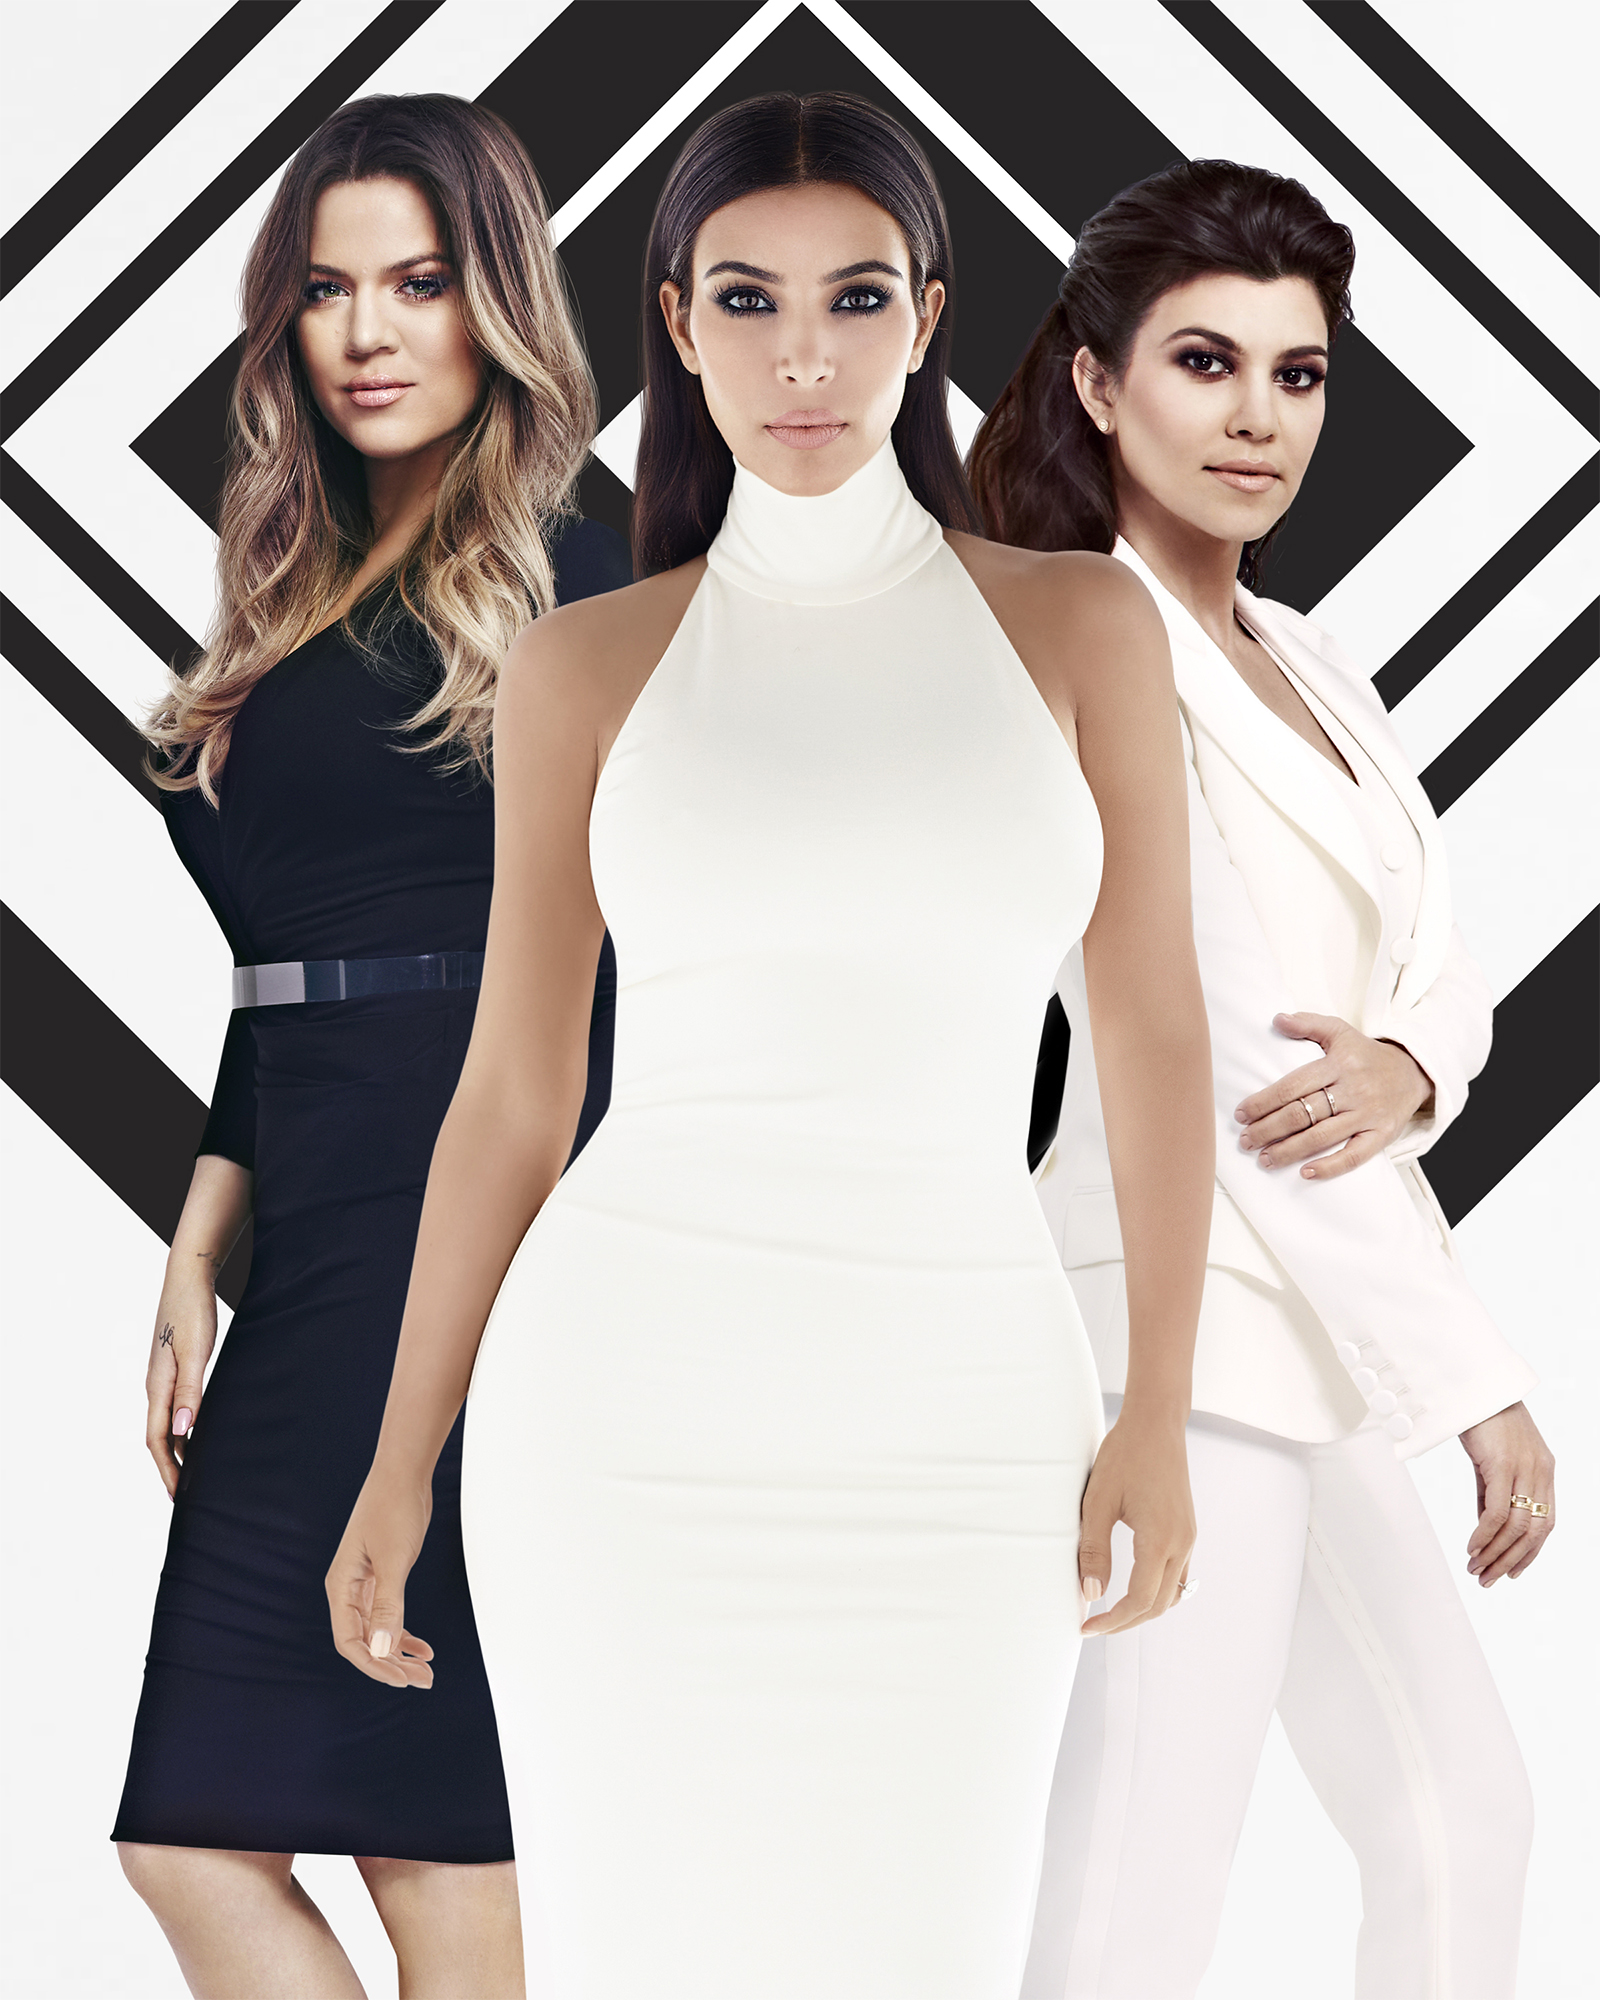 Kris Jenner Has Apparently Confirmed Khloe Kardashian's Pregnancy